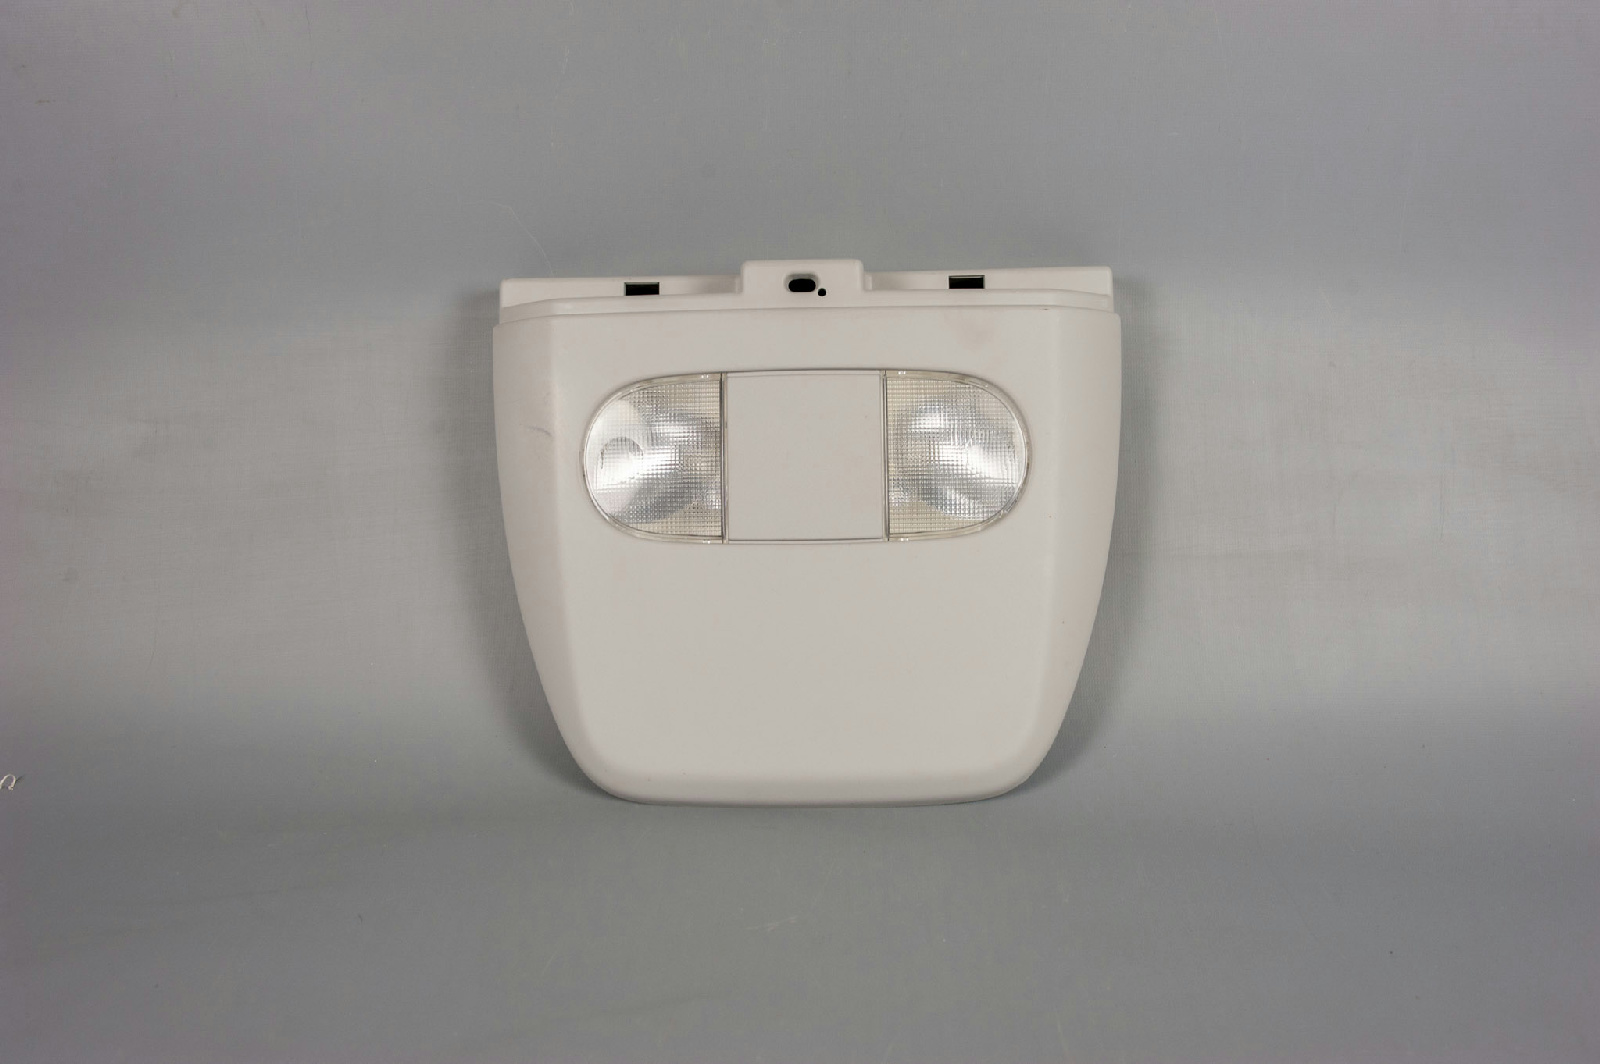 2004 2008 ford f150 overhead console with map lights ebay. Black Bedroom Furniture Sets. Home Design Ideas